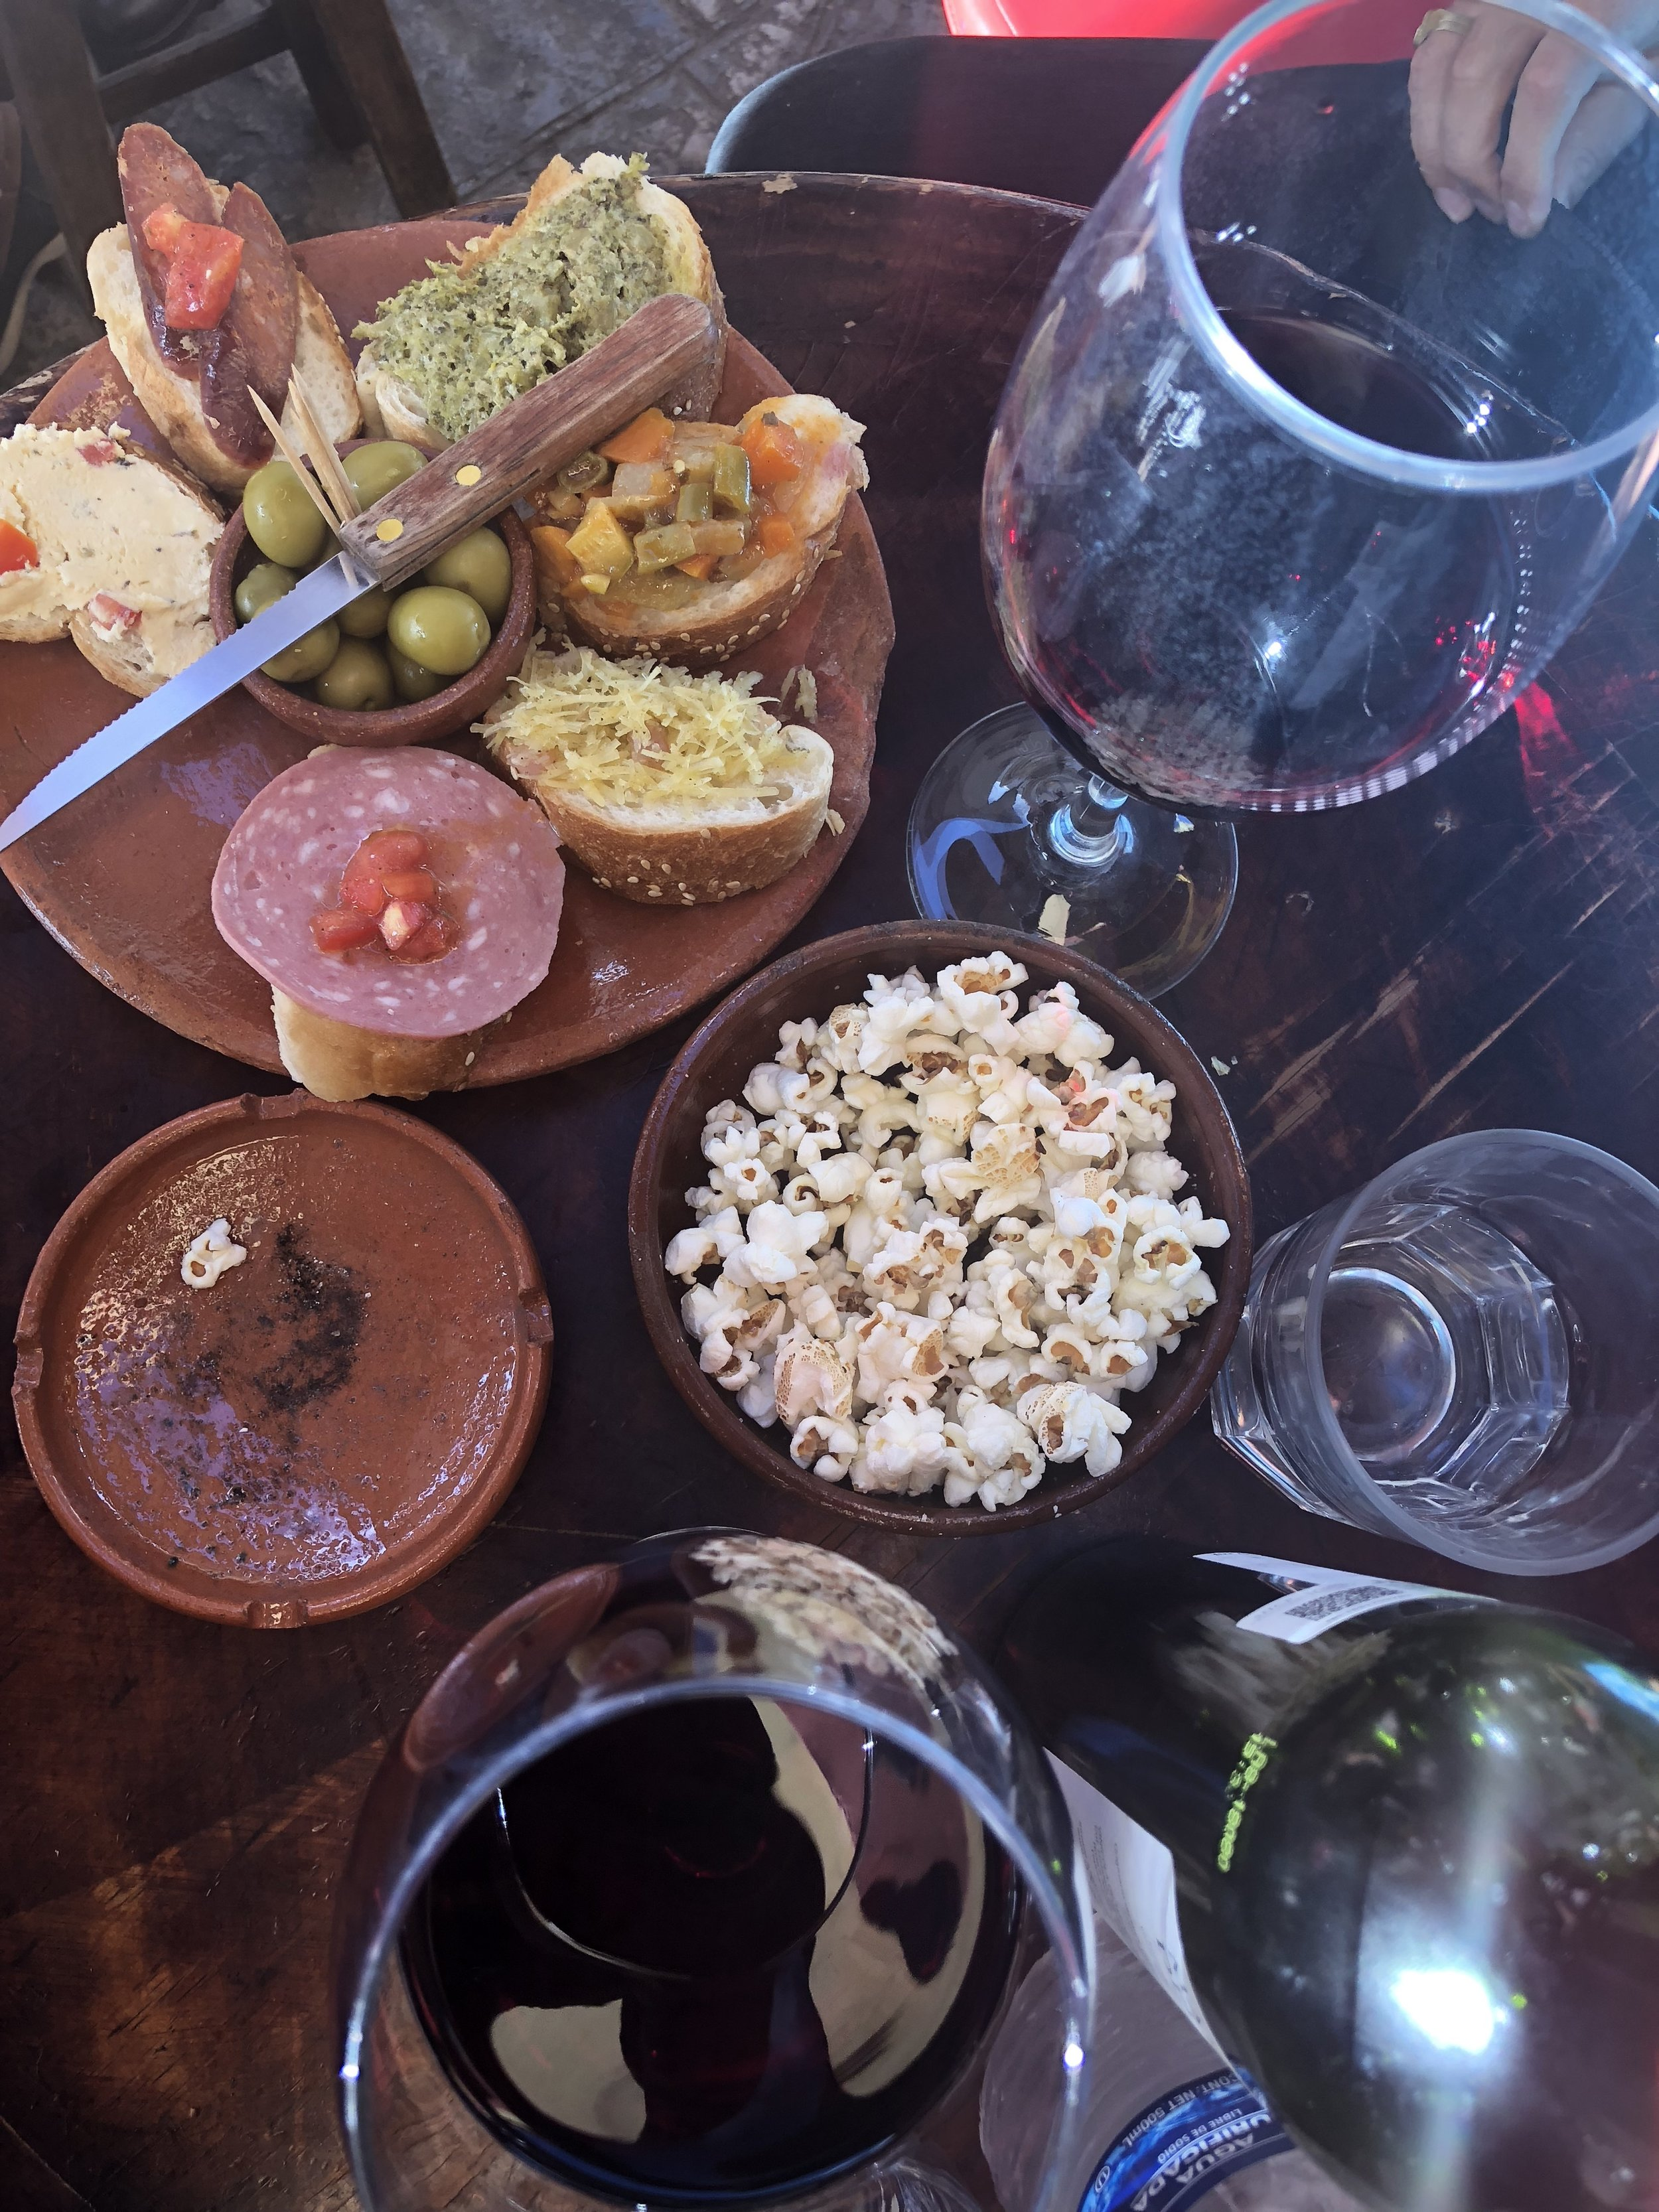 Order a bottle of wine, get a plate of free tapas.